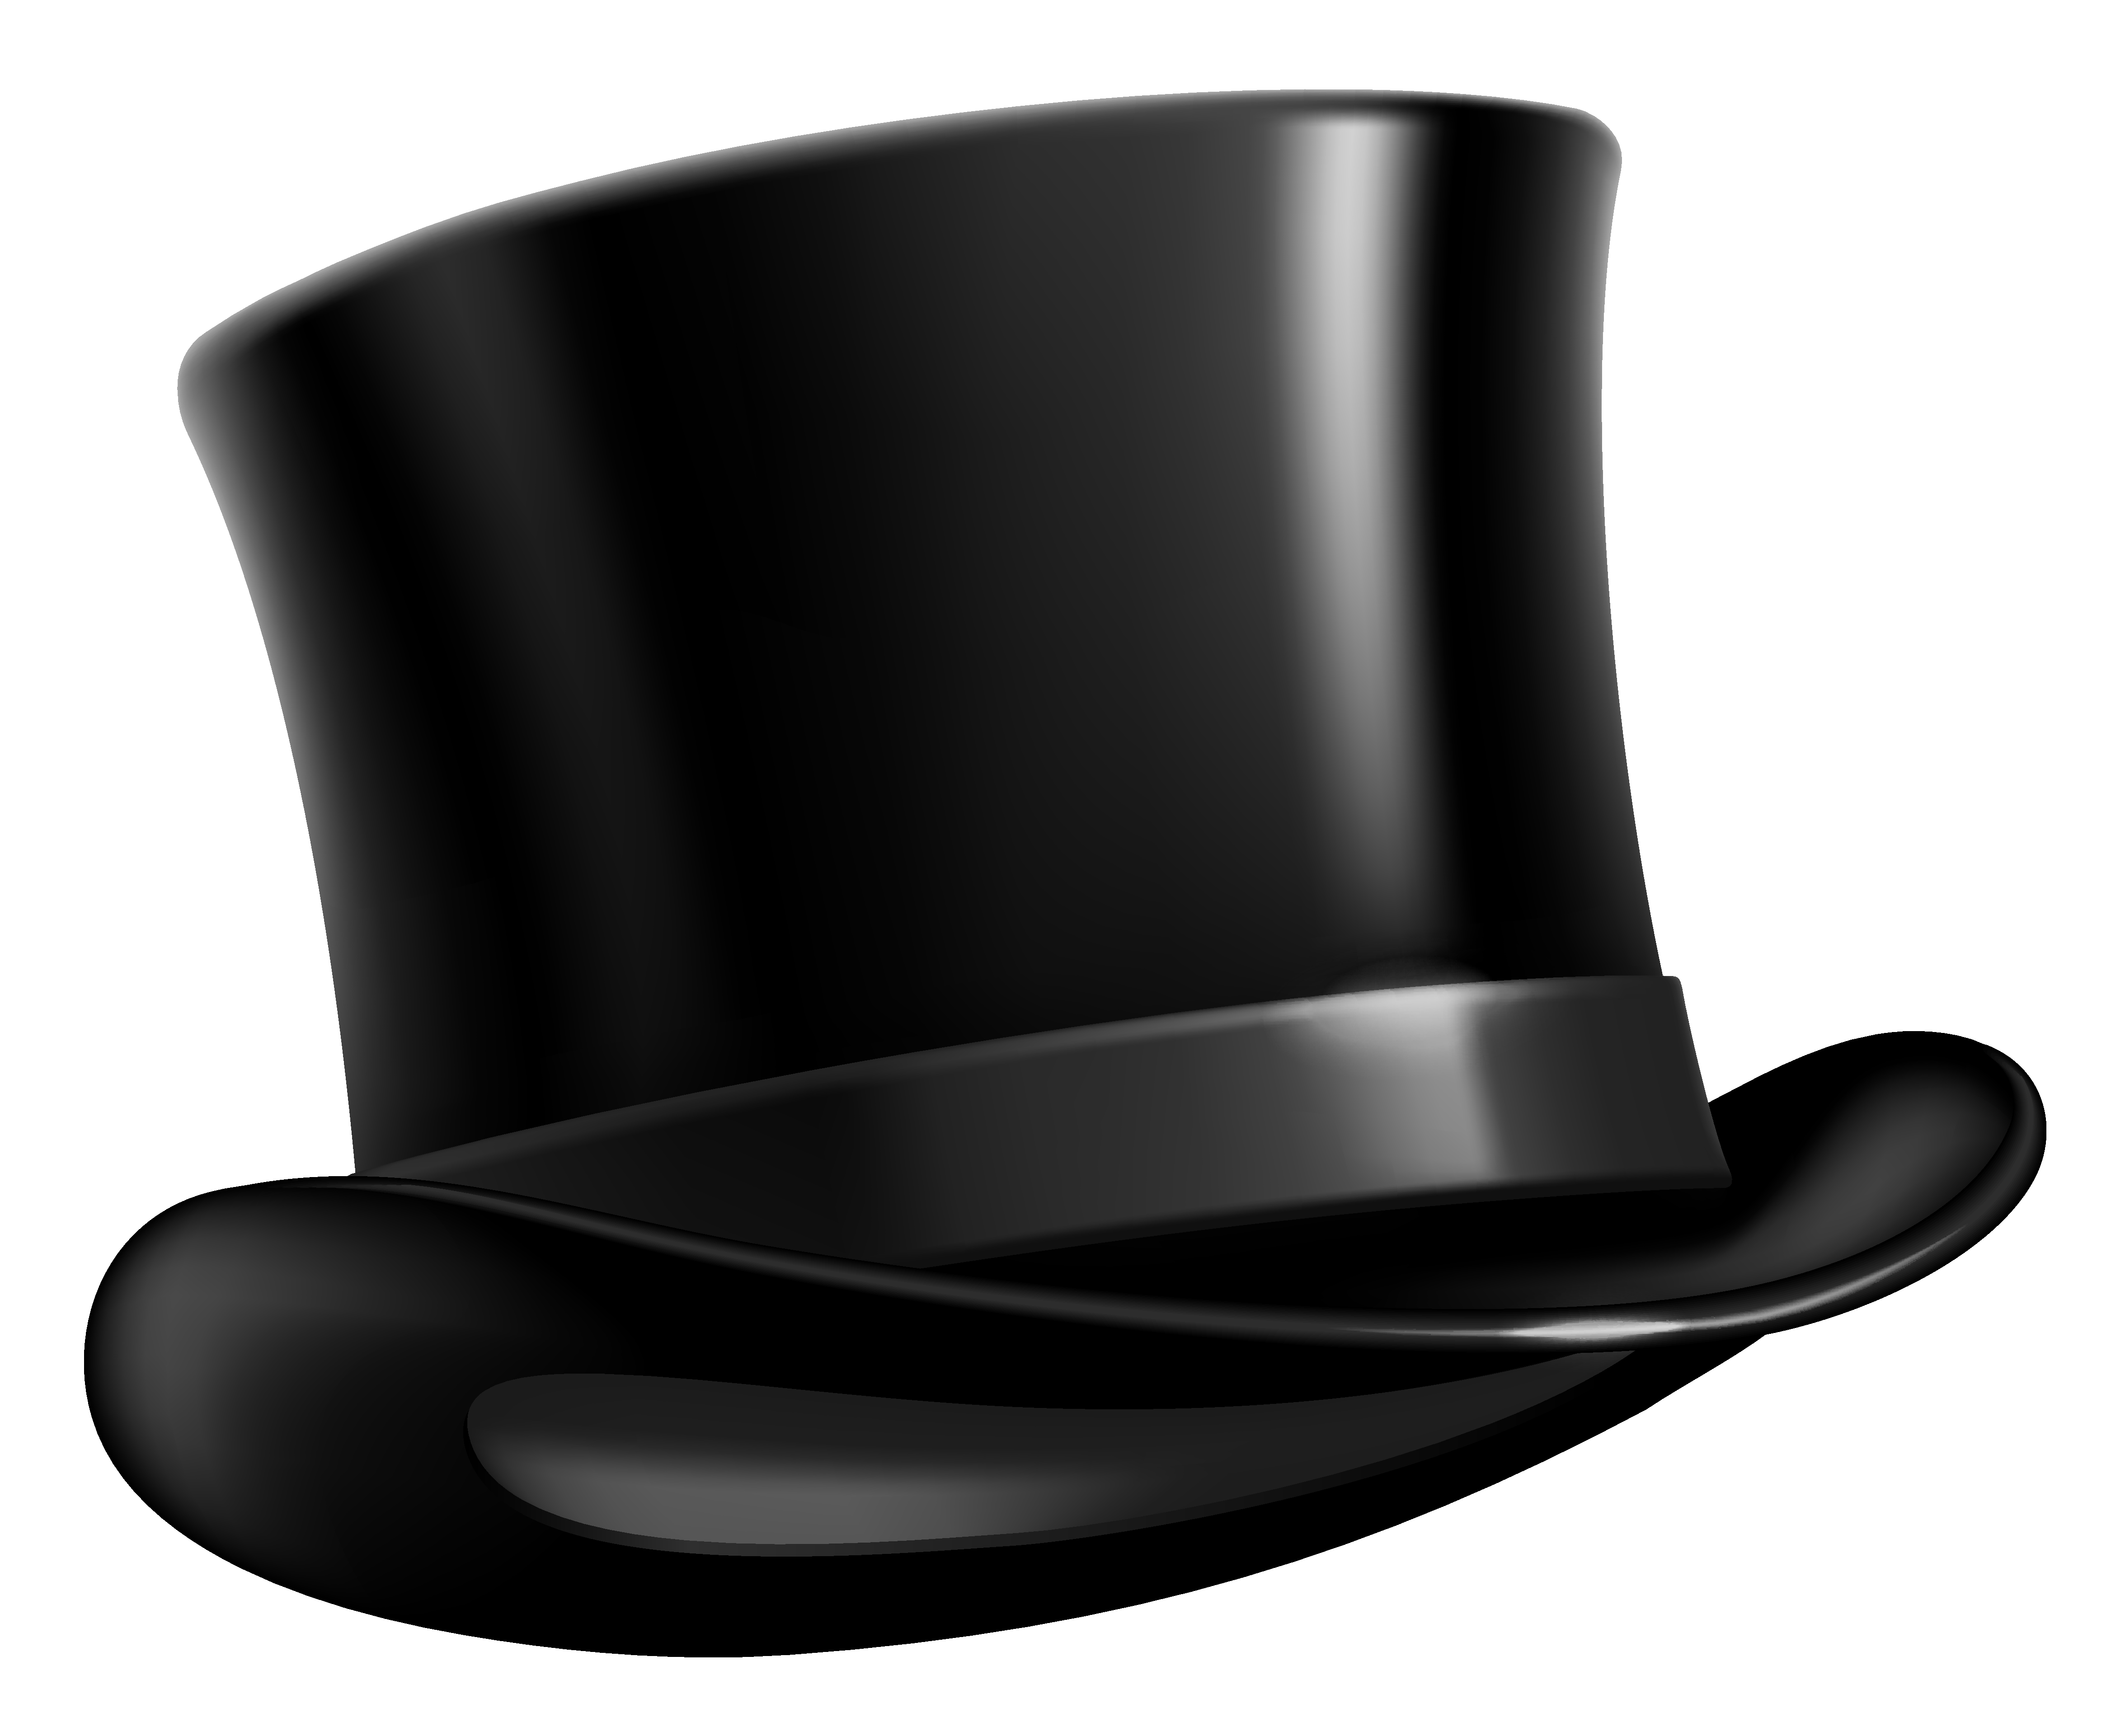 Top hat clipart blue ribbon png transparent library Free Black Hat Cliparts, Download Free Clip Art, Free Clip Art on ... png transparent library